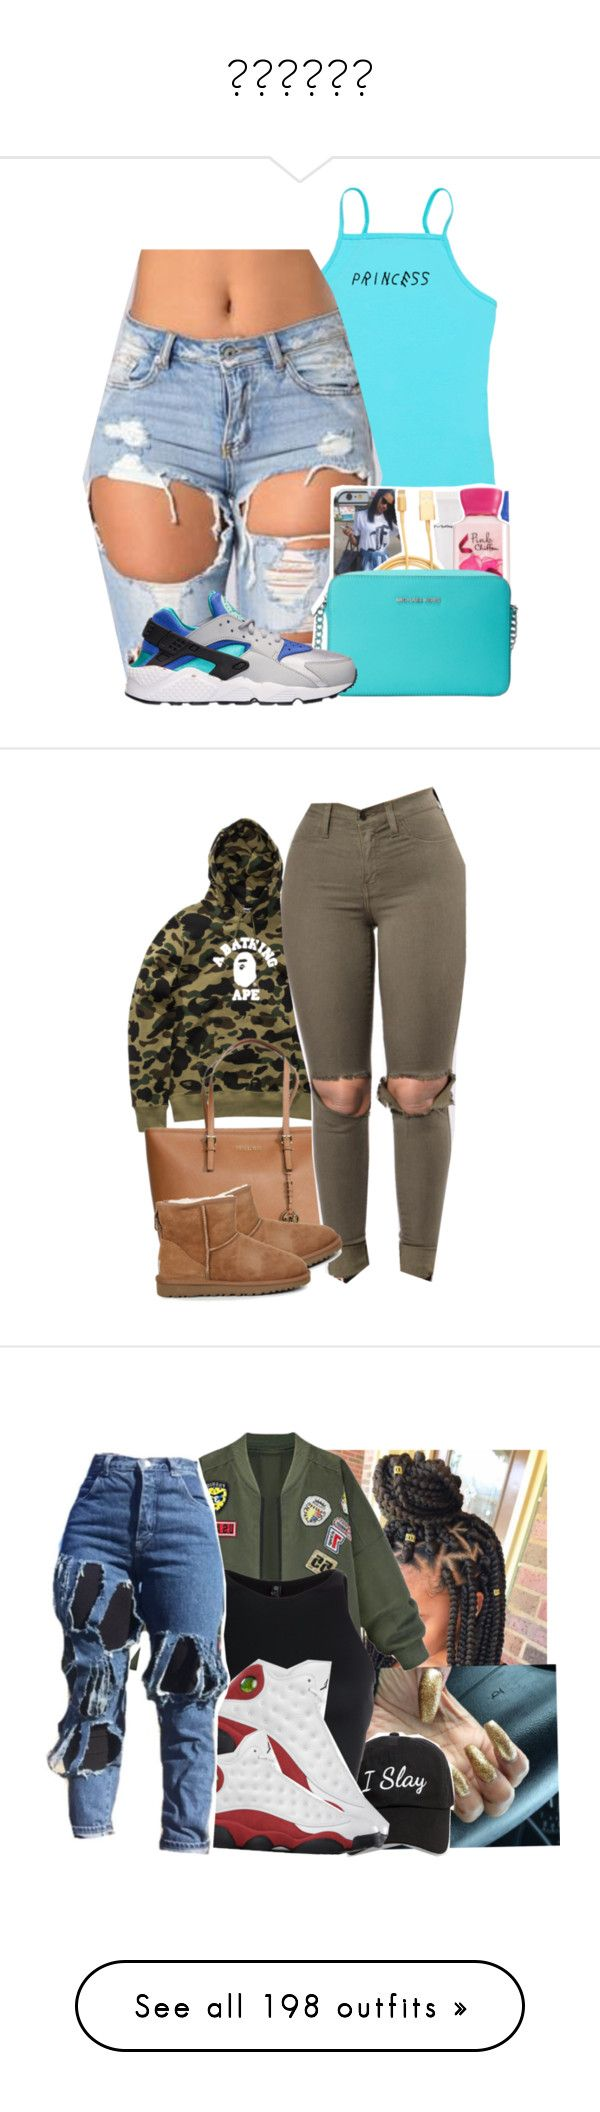 """"" by paris-doll ❤ liked on Polyvore featuring NIKE, A BATHING APE, Michael Kors, UGG Australia, WithChic, Steve Madden, Onzie, SimpleOutfits, jordans and bomberjackets"